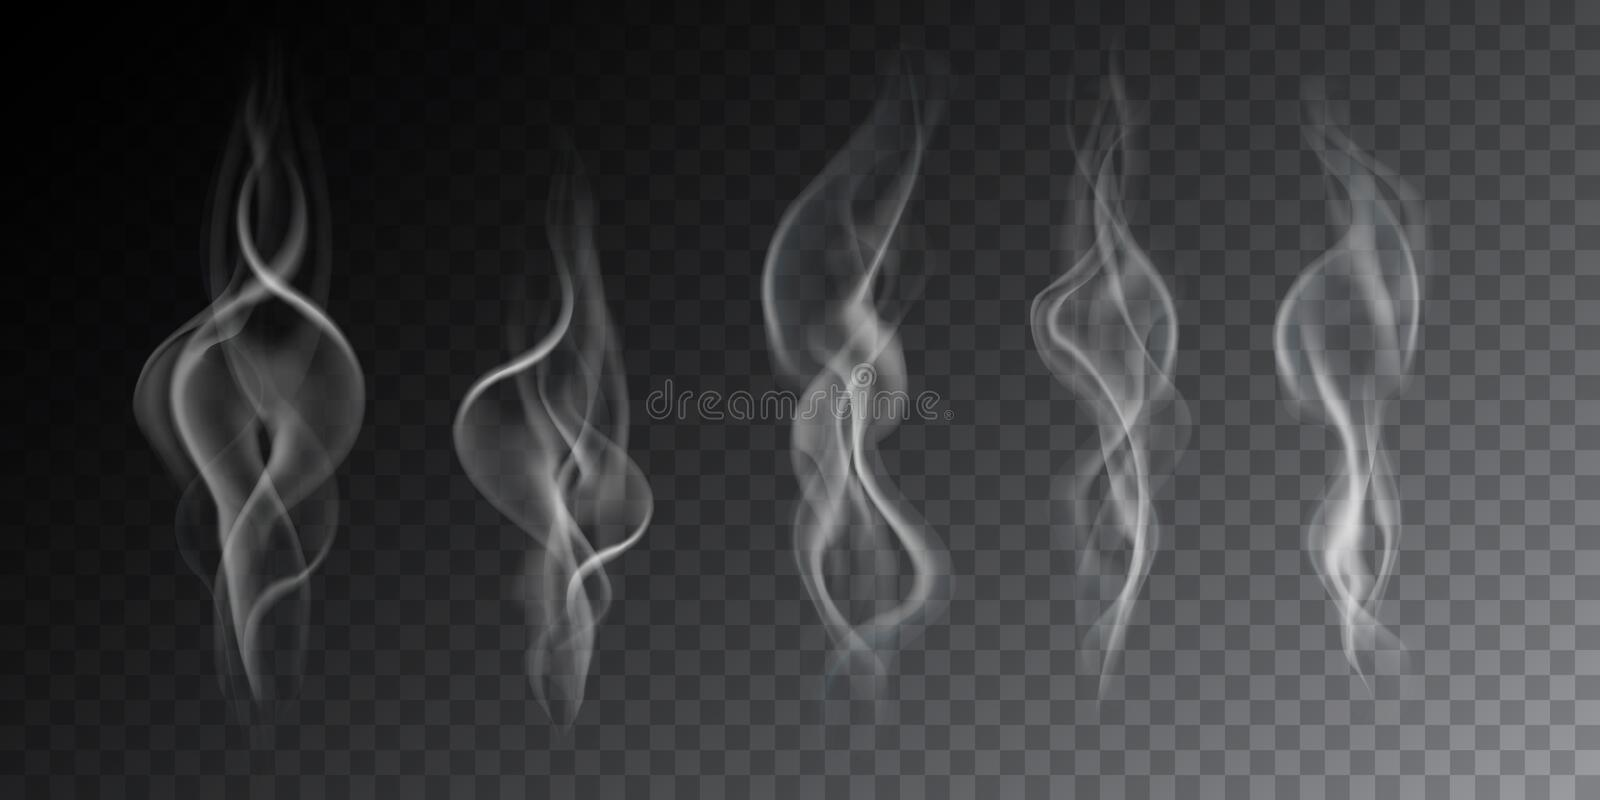 Realistic illustration of haze, cigarette smoke or steam over a hot drink, isolated on a transparent background, vector. Realistic illustration of haze vector illustration